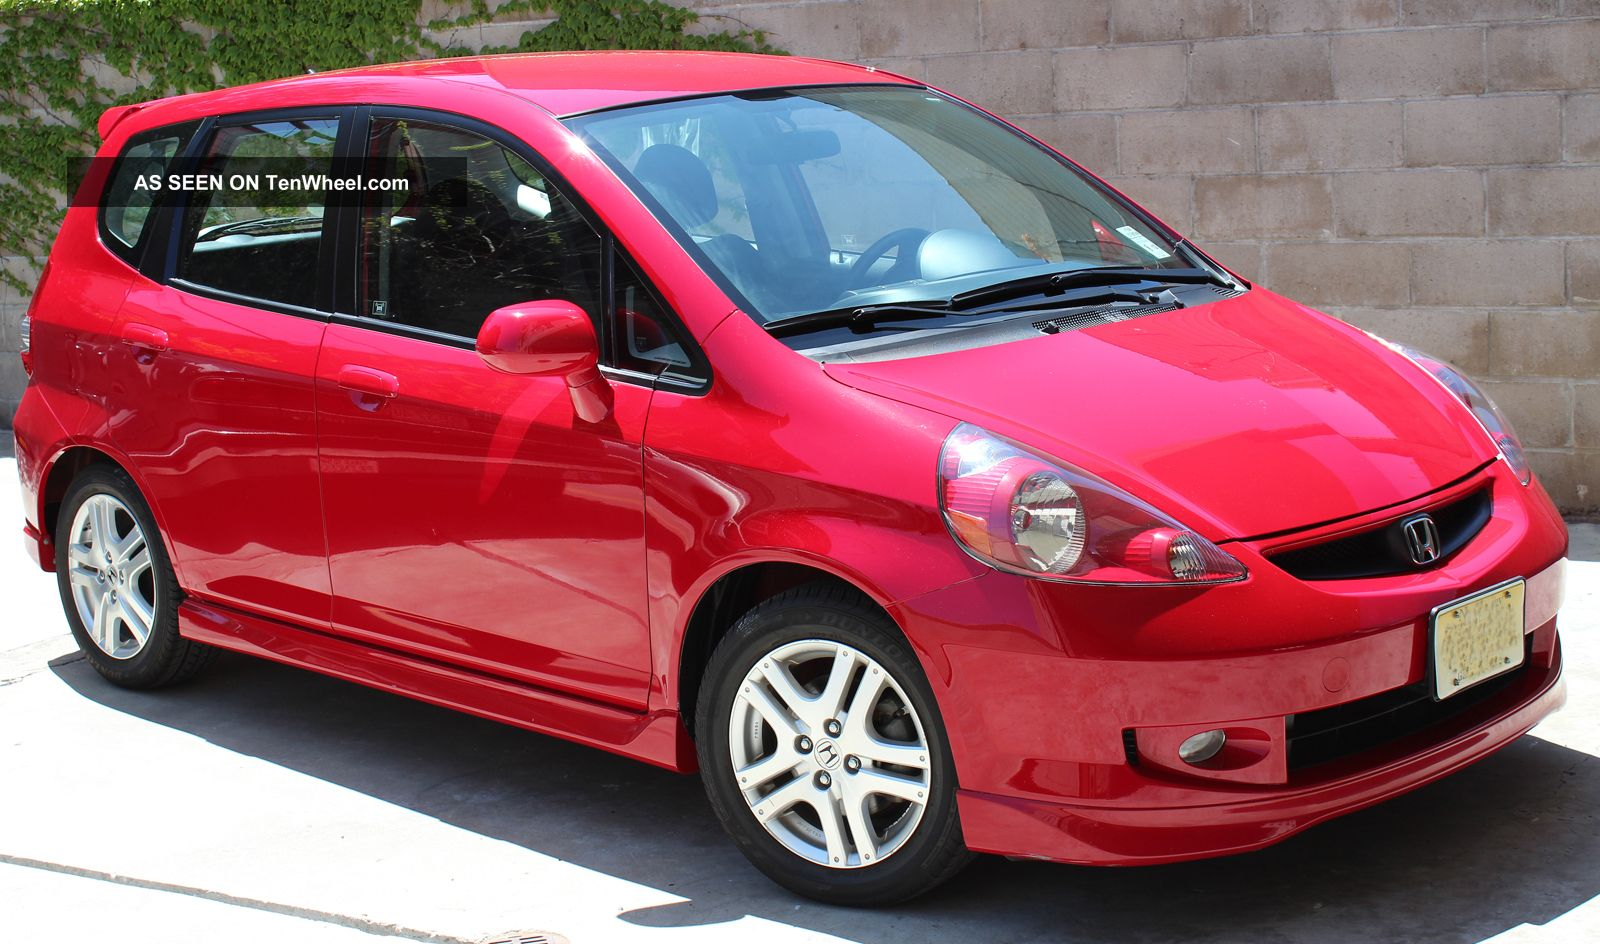 Extremely 2008 honda fit sport 5spd only 7 455 mile car for Cars like honda fit